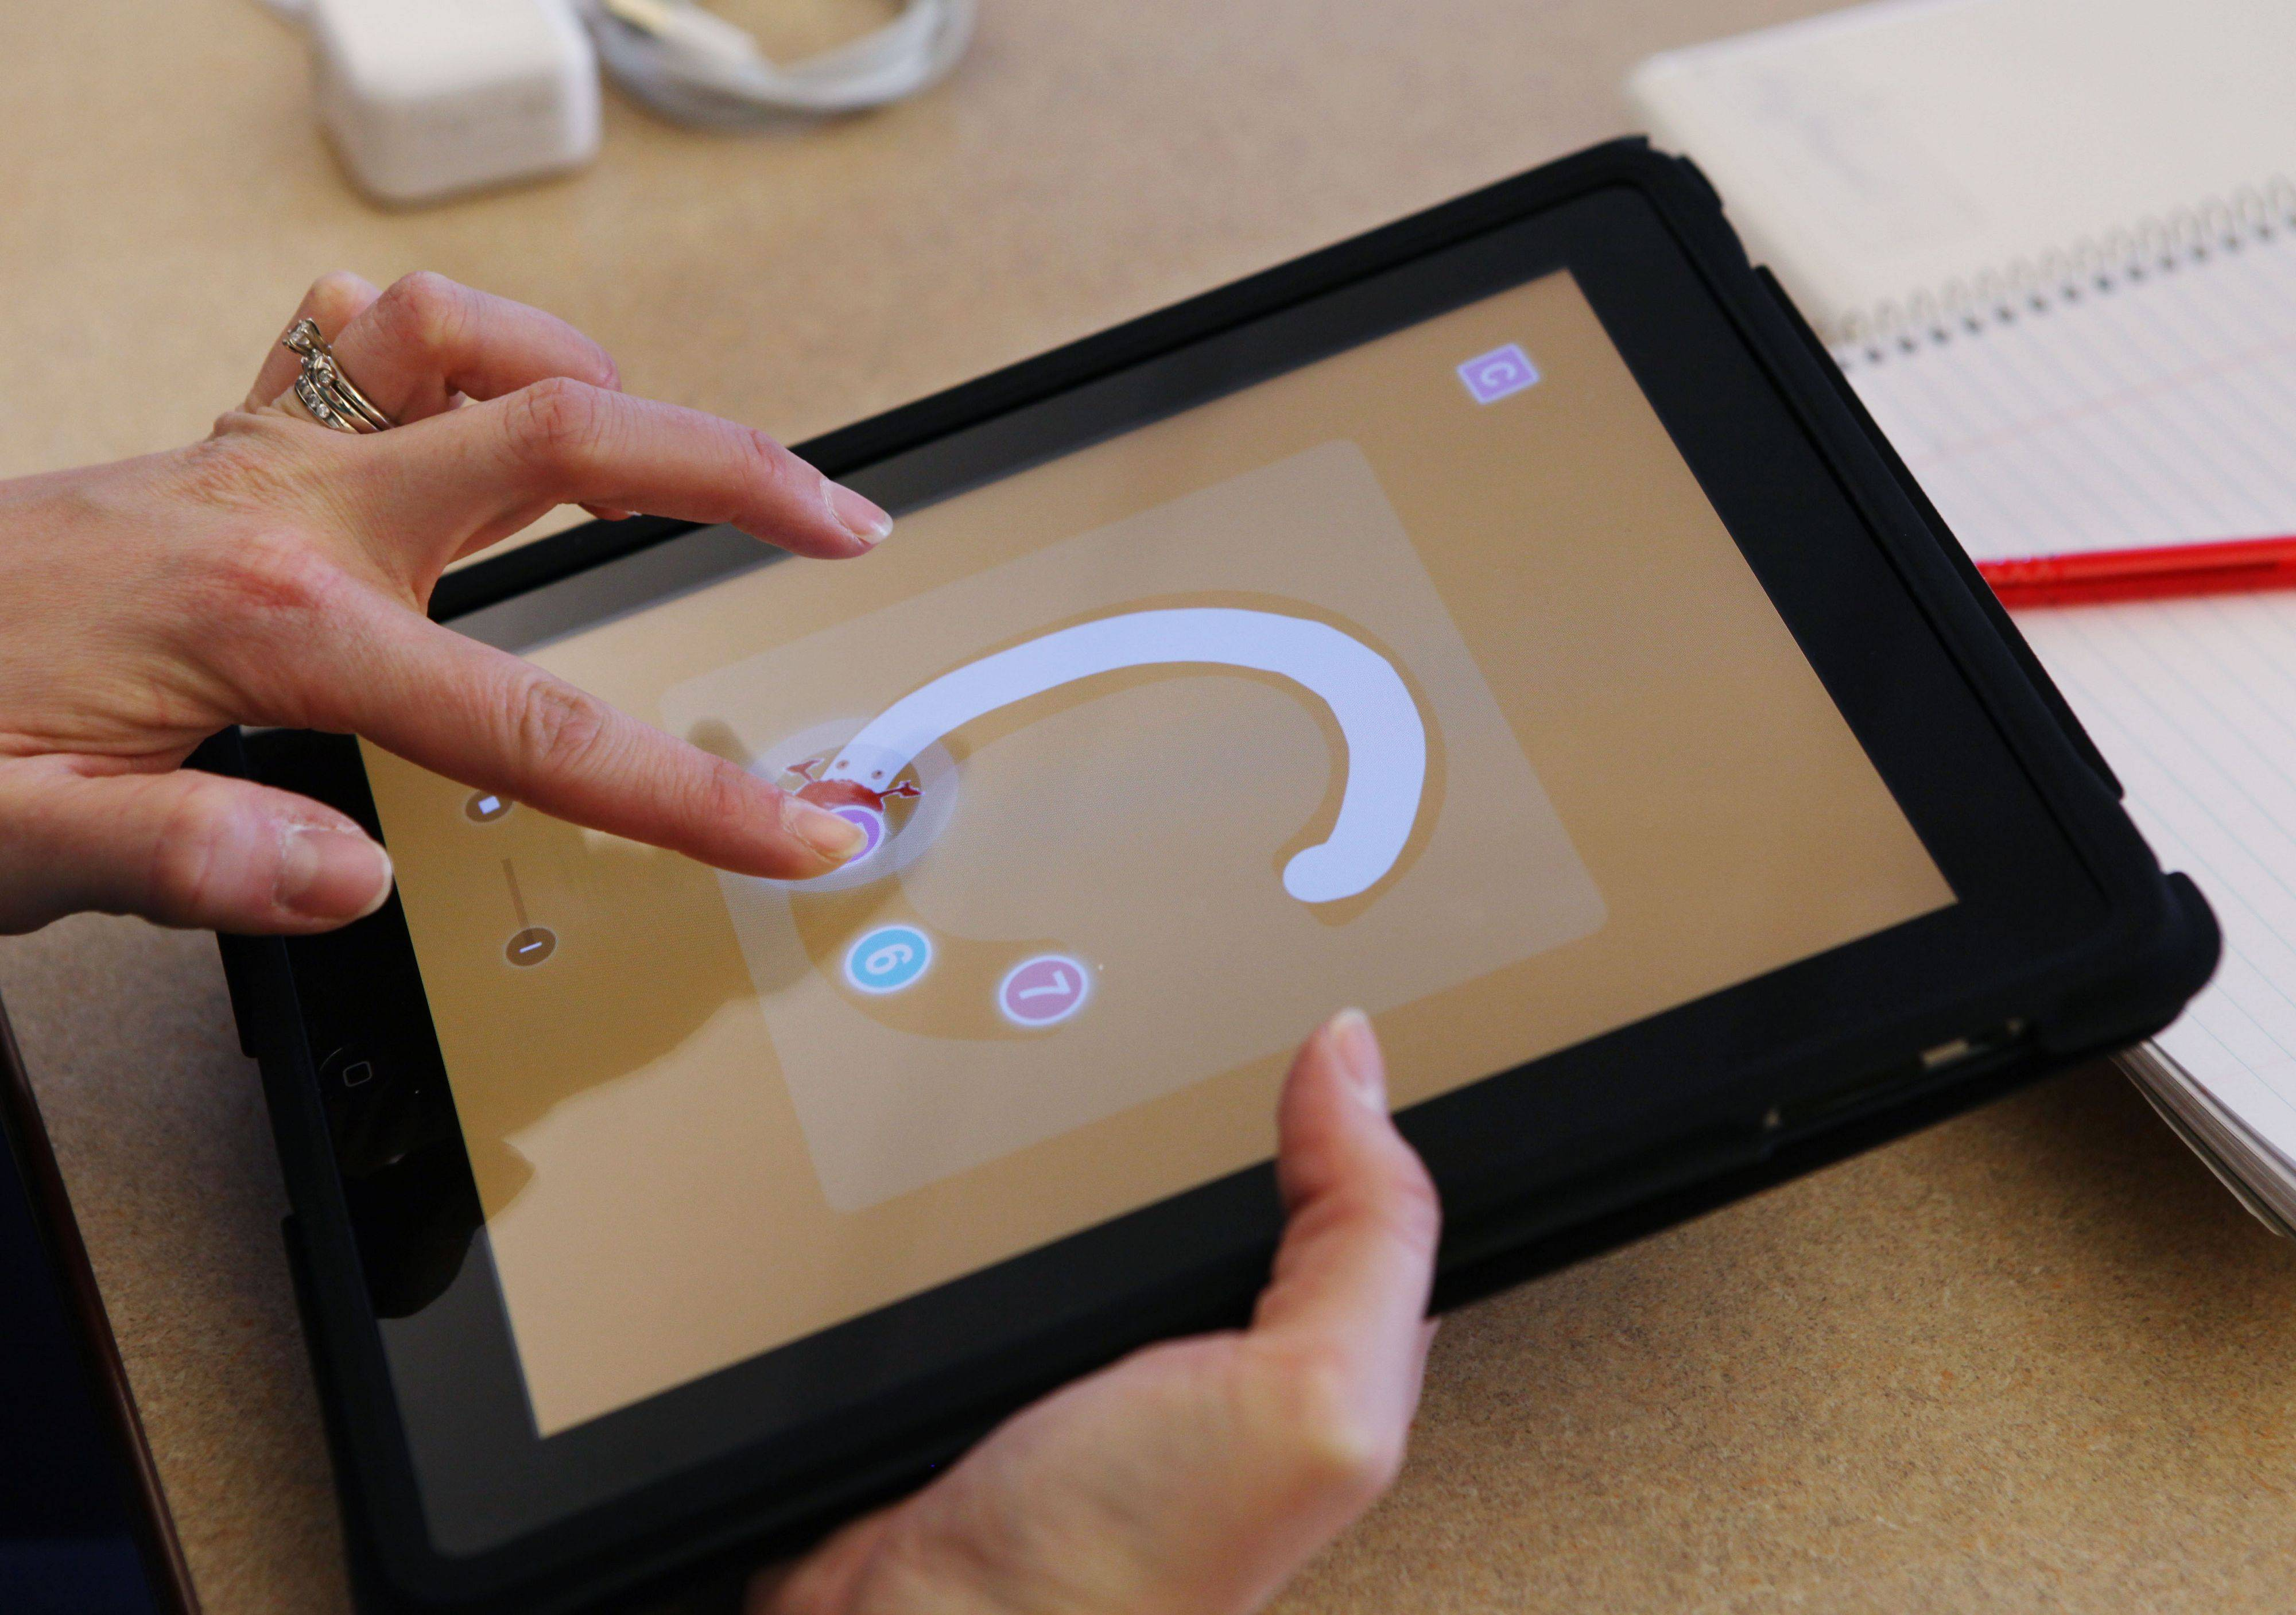 Kindergarten teacher Amy Heimerl tries out a program for learning letters on an iPads in Auburn, Maine. Five kindergarten teachers were given iPads to try out in preparation for next year when nearly 300 kindergartners will be given their own iPad2s.